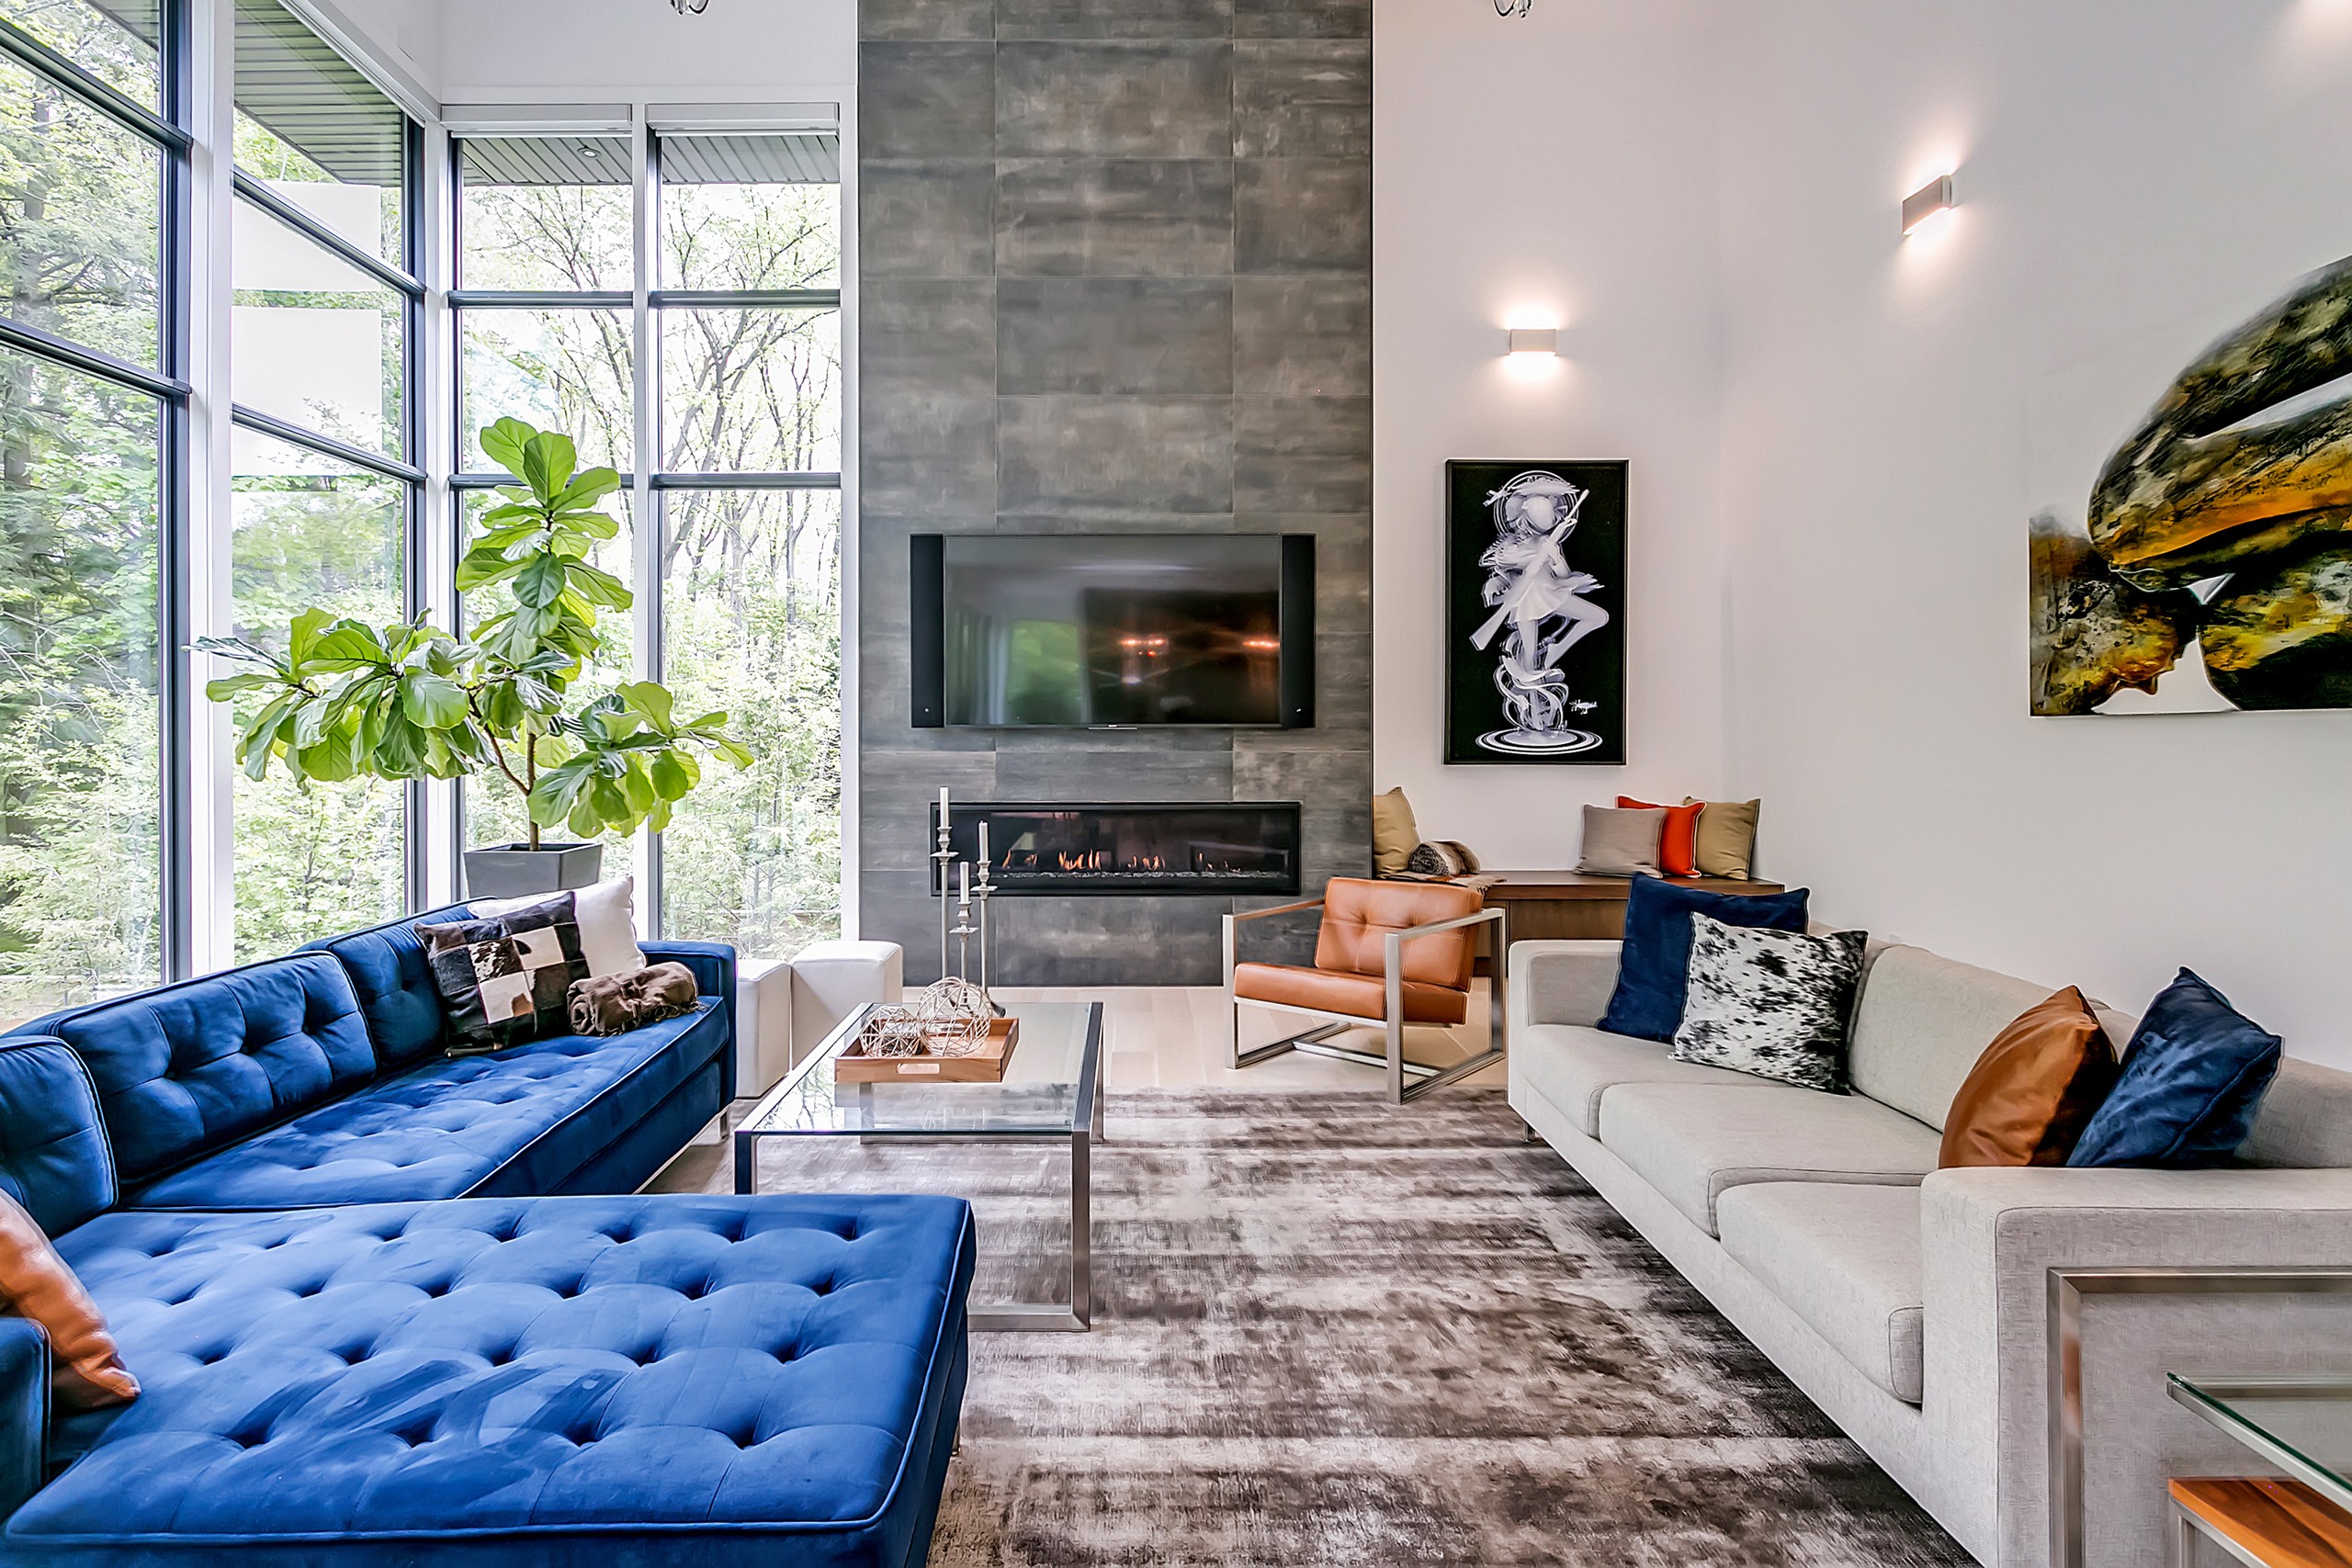 A living space with the fireplace in the center with a tv. There are two couches: a blue sectional on the left and a grey couch on the left.